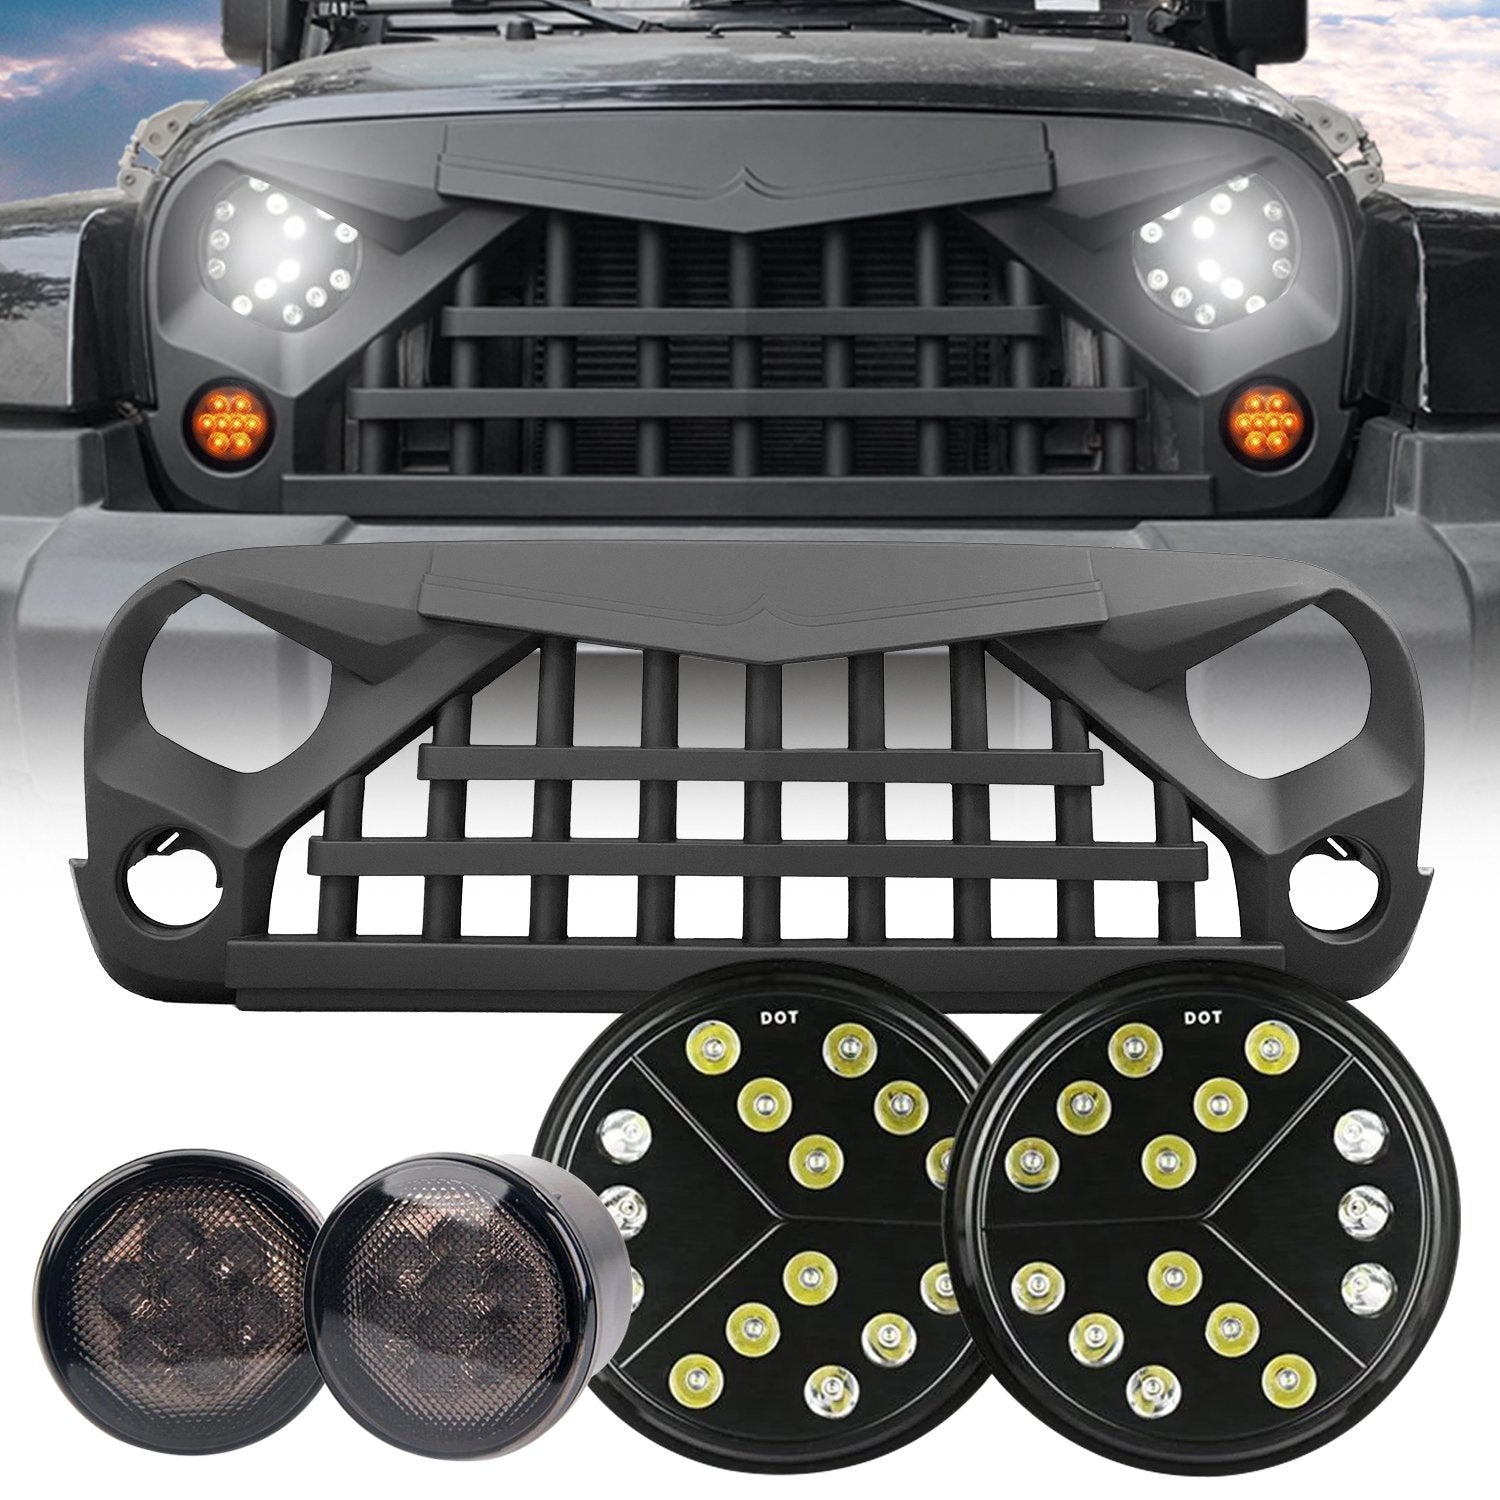 LED Headlights & Warrior Grille & LED Star Amber Turn Signals